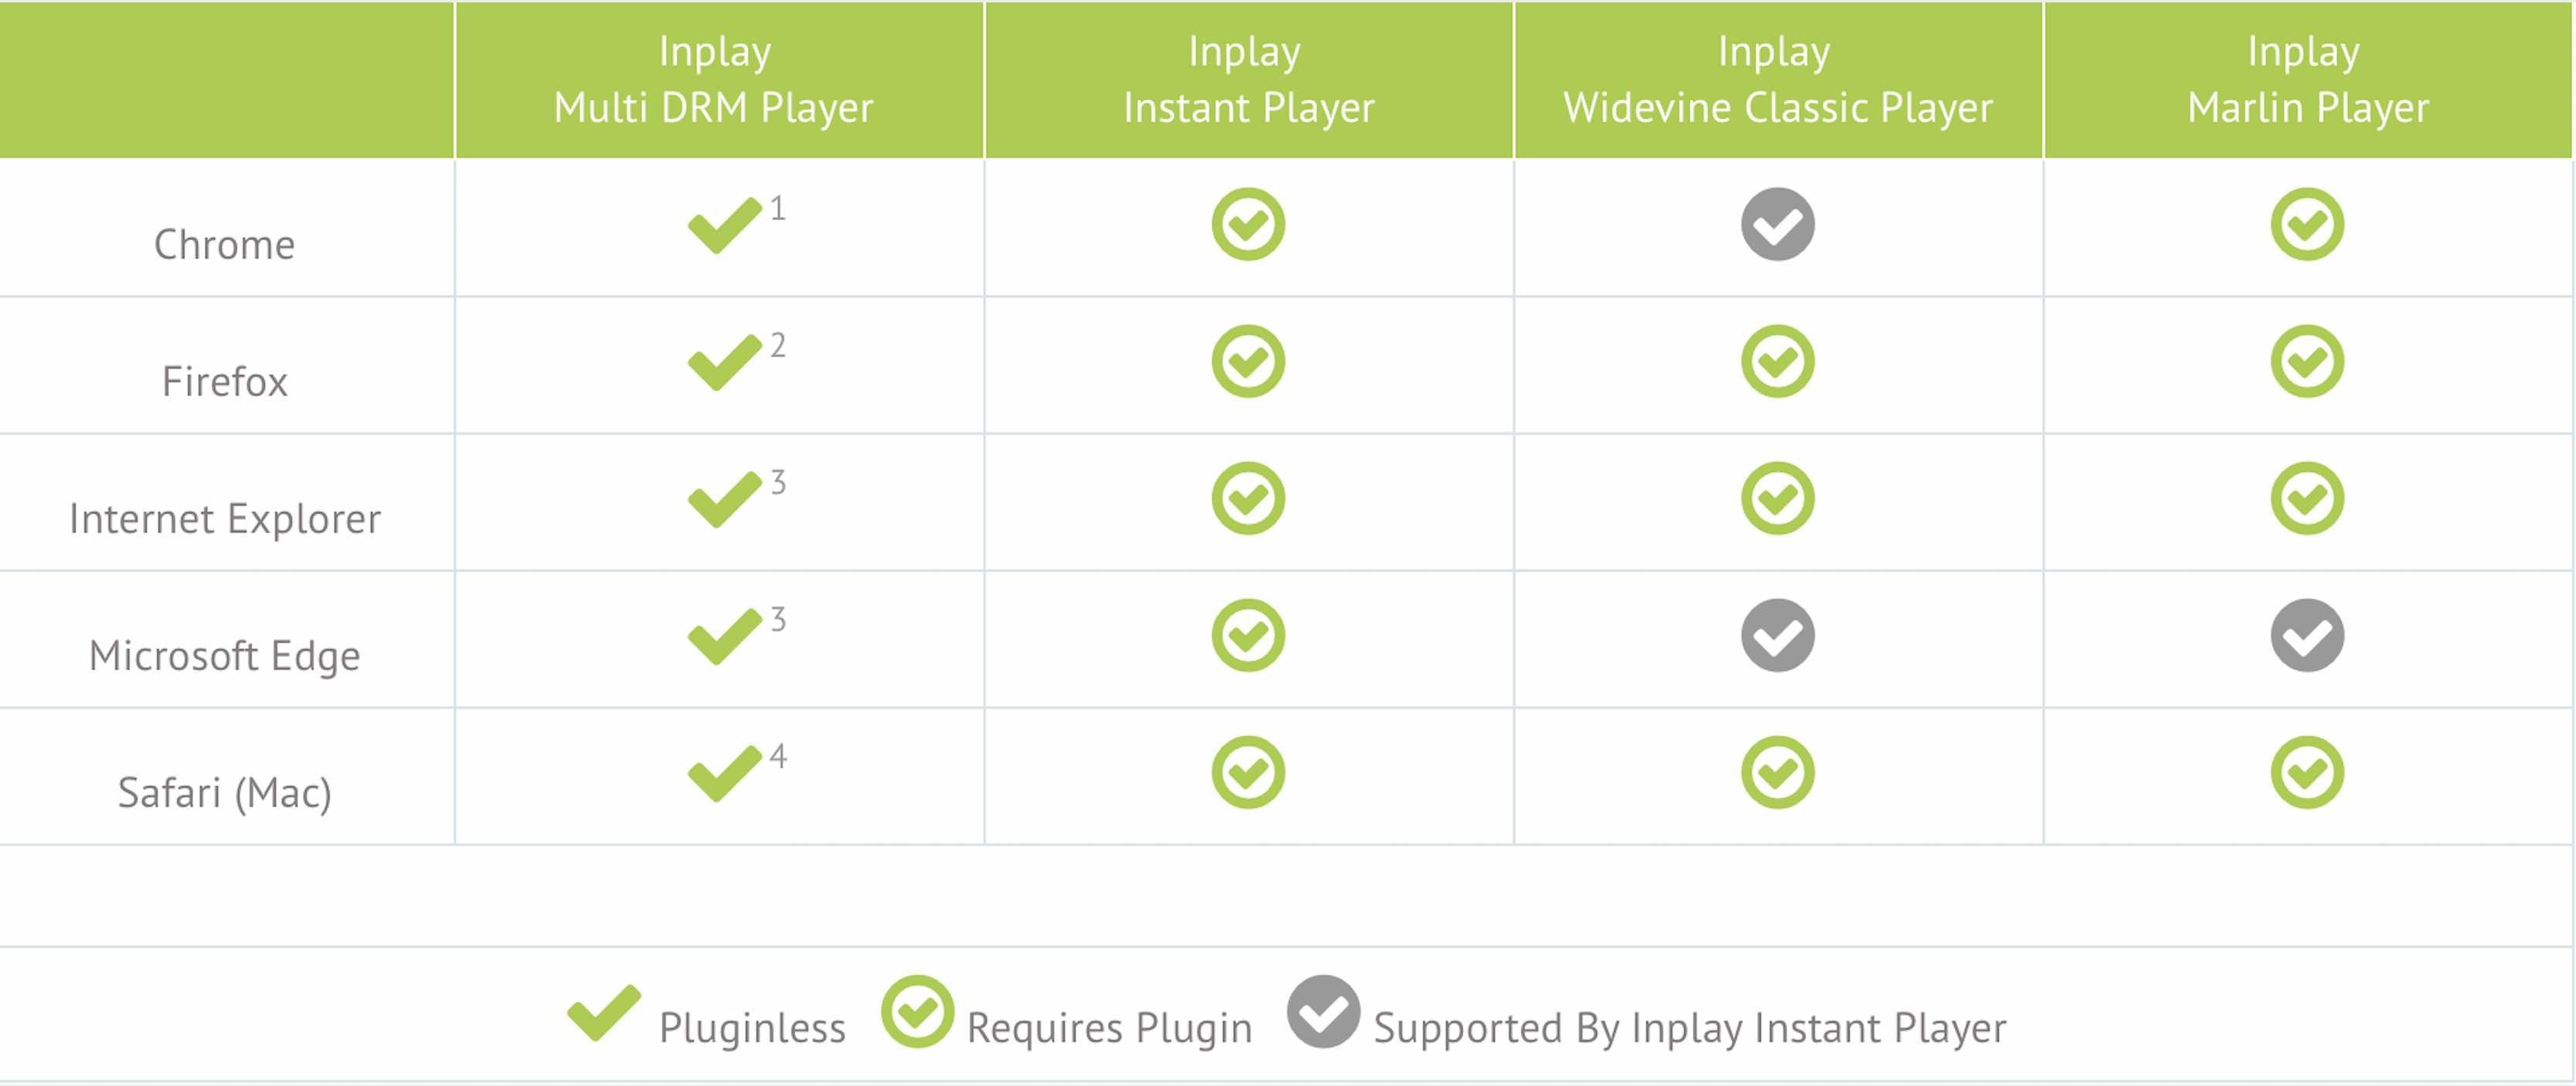 inplay web plays supported platform